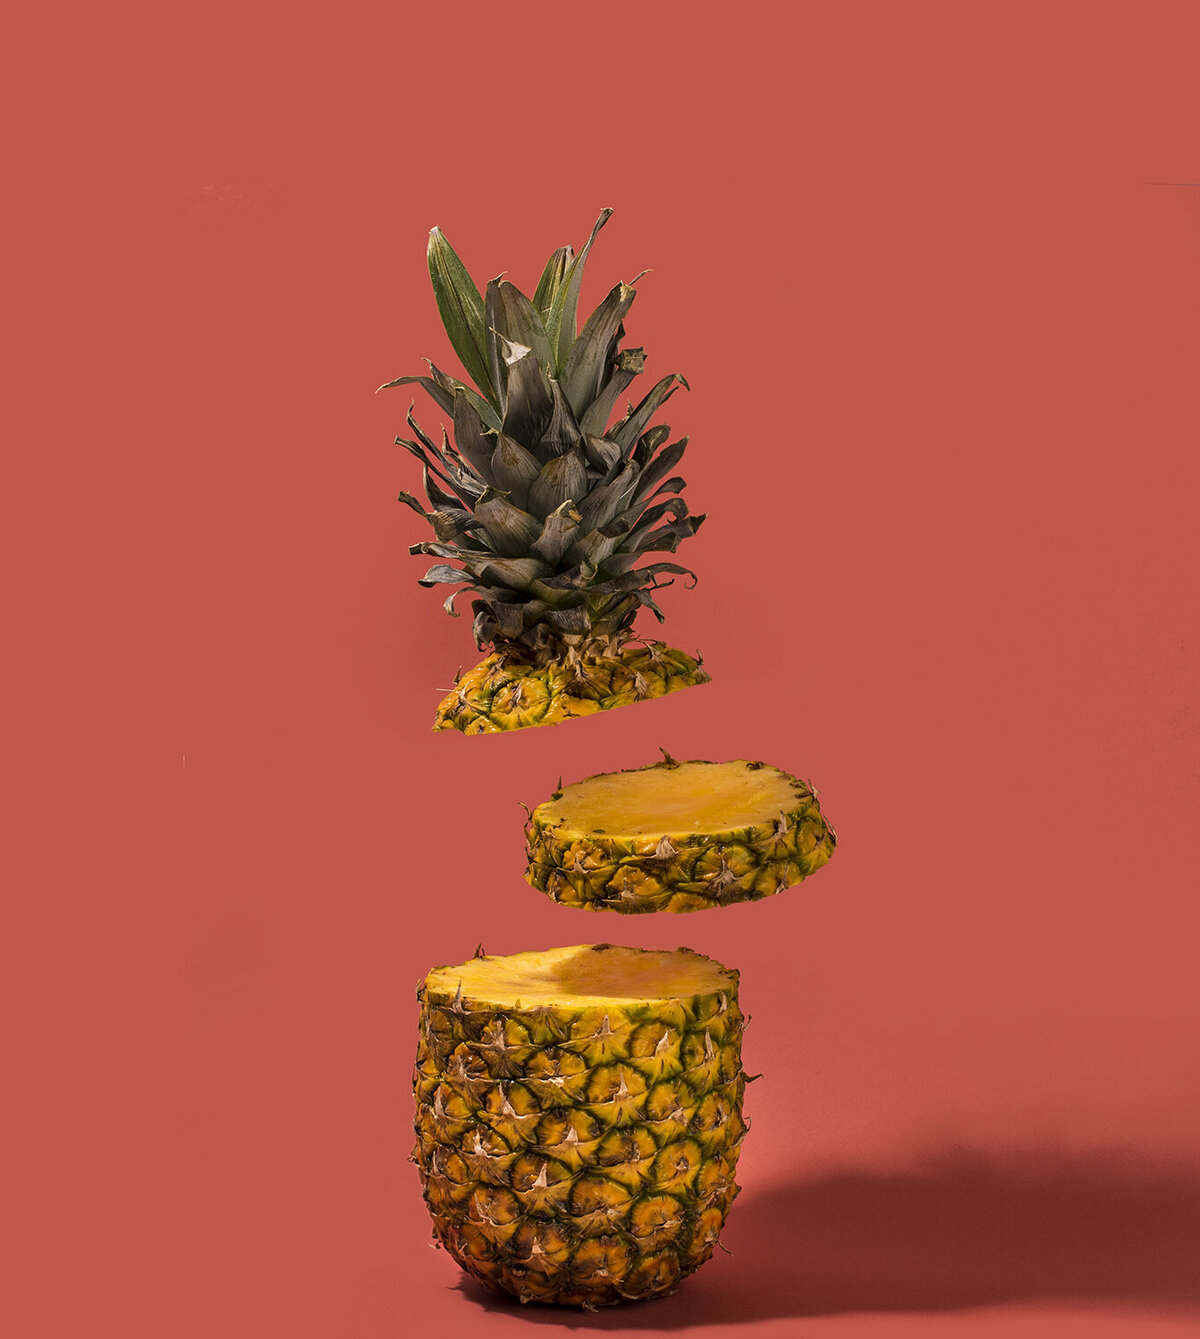 los angeles food photographer produce photography pineapple